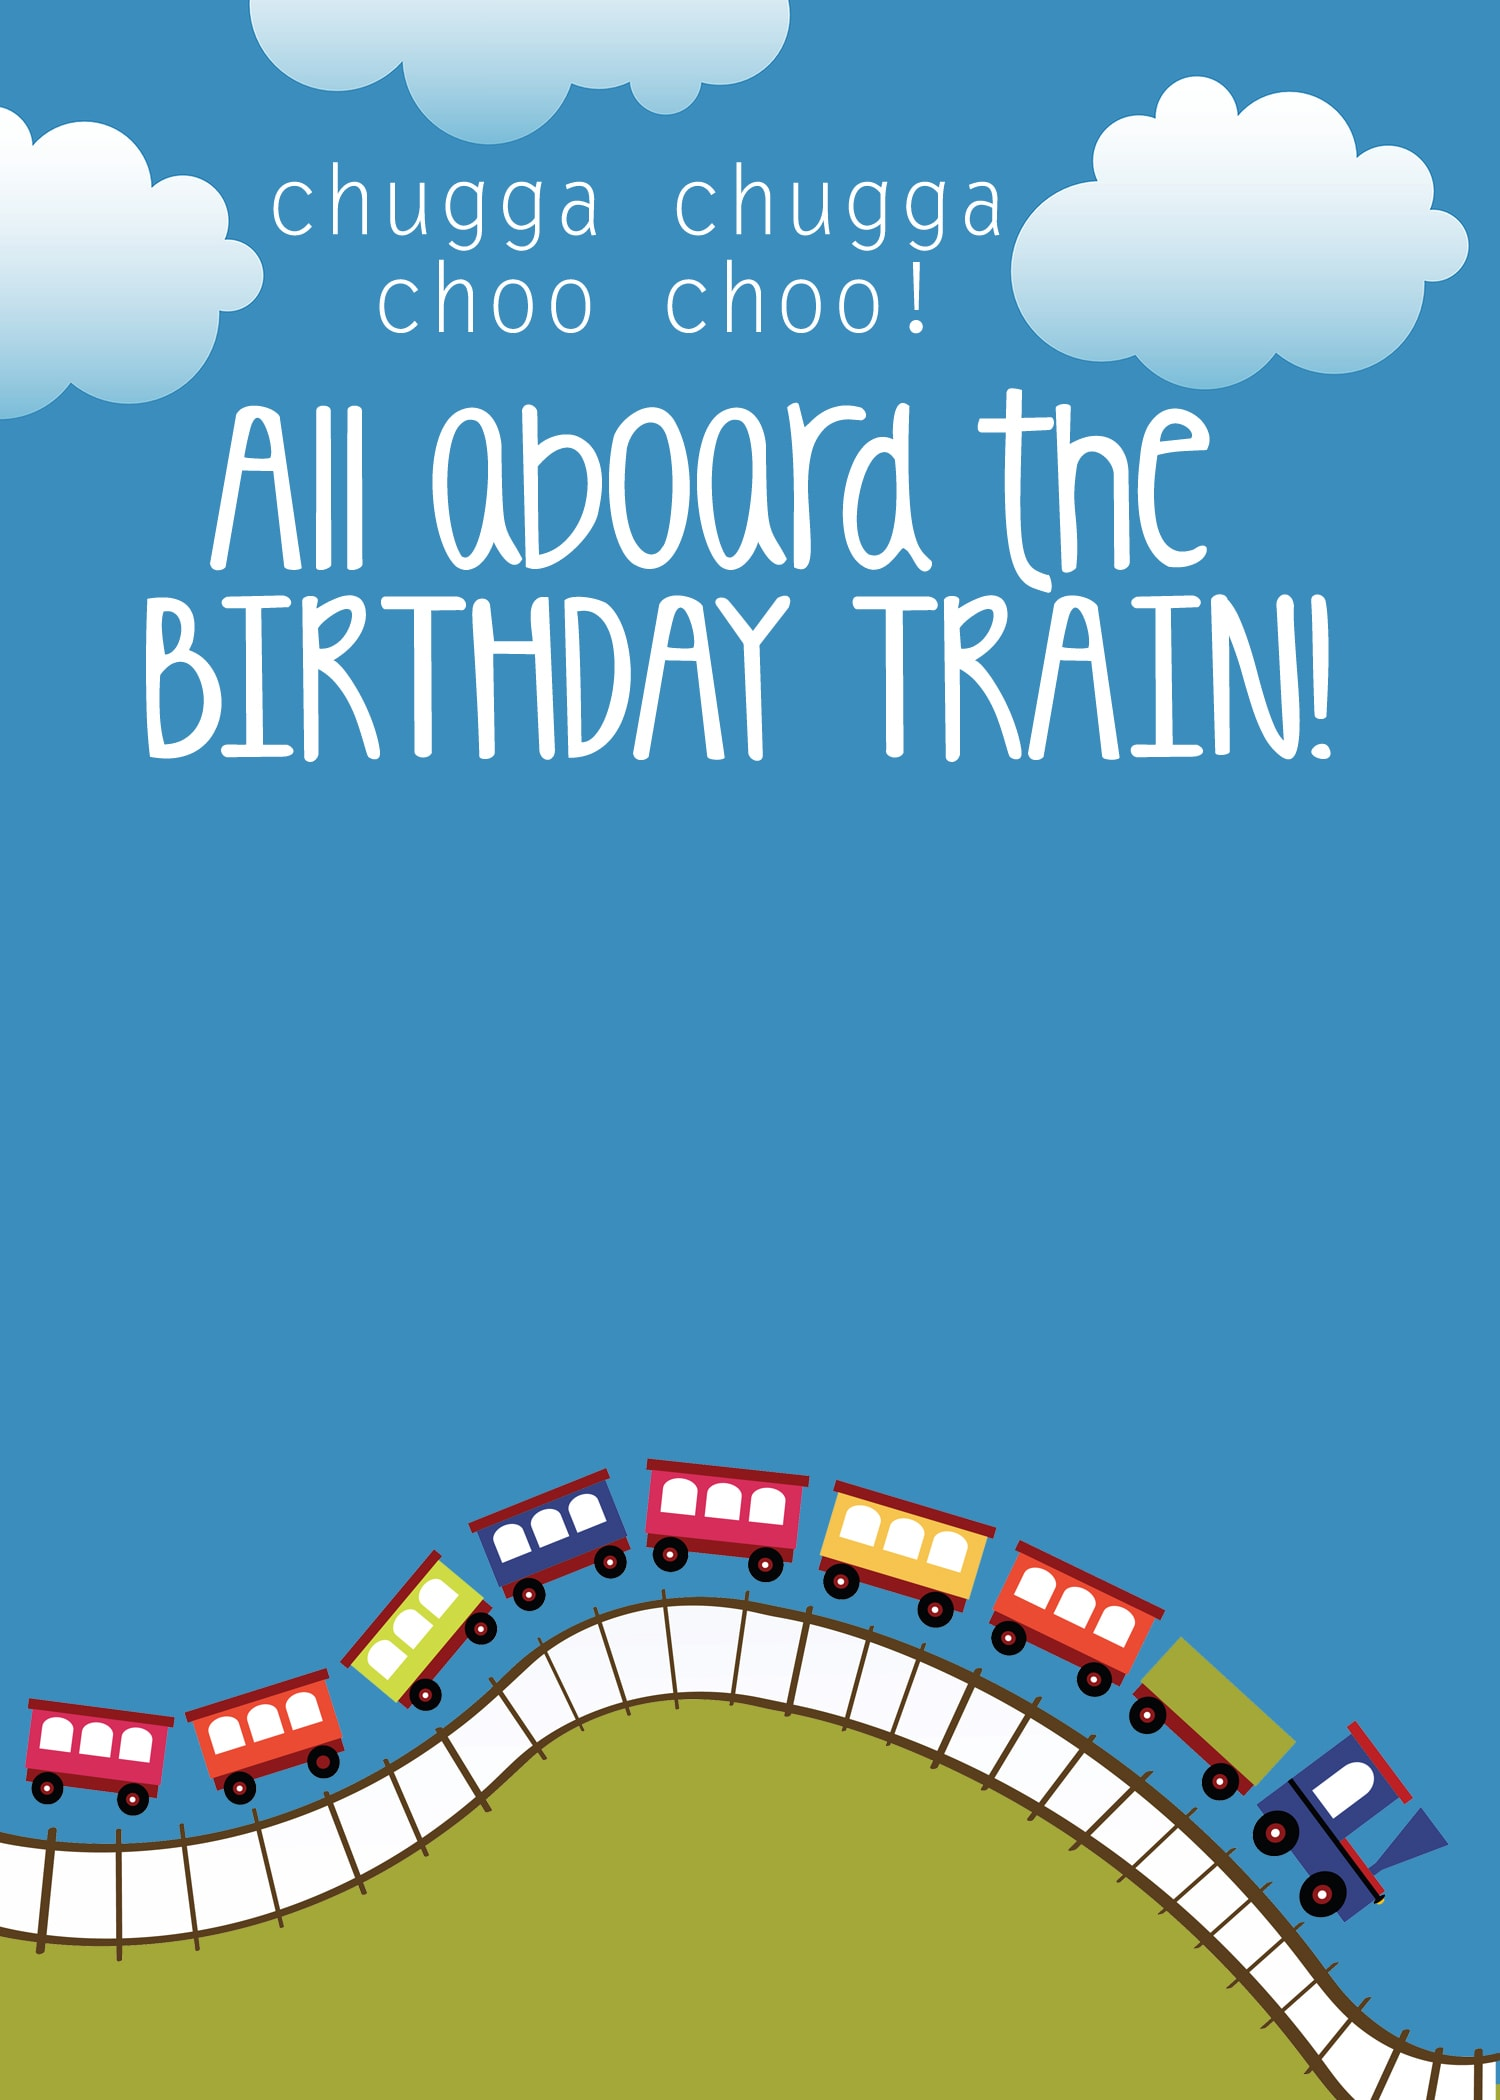 That Says Happy Birthday Along With Some Little Train Spacers